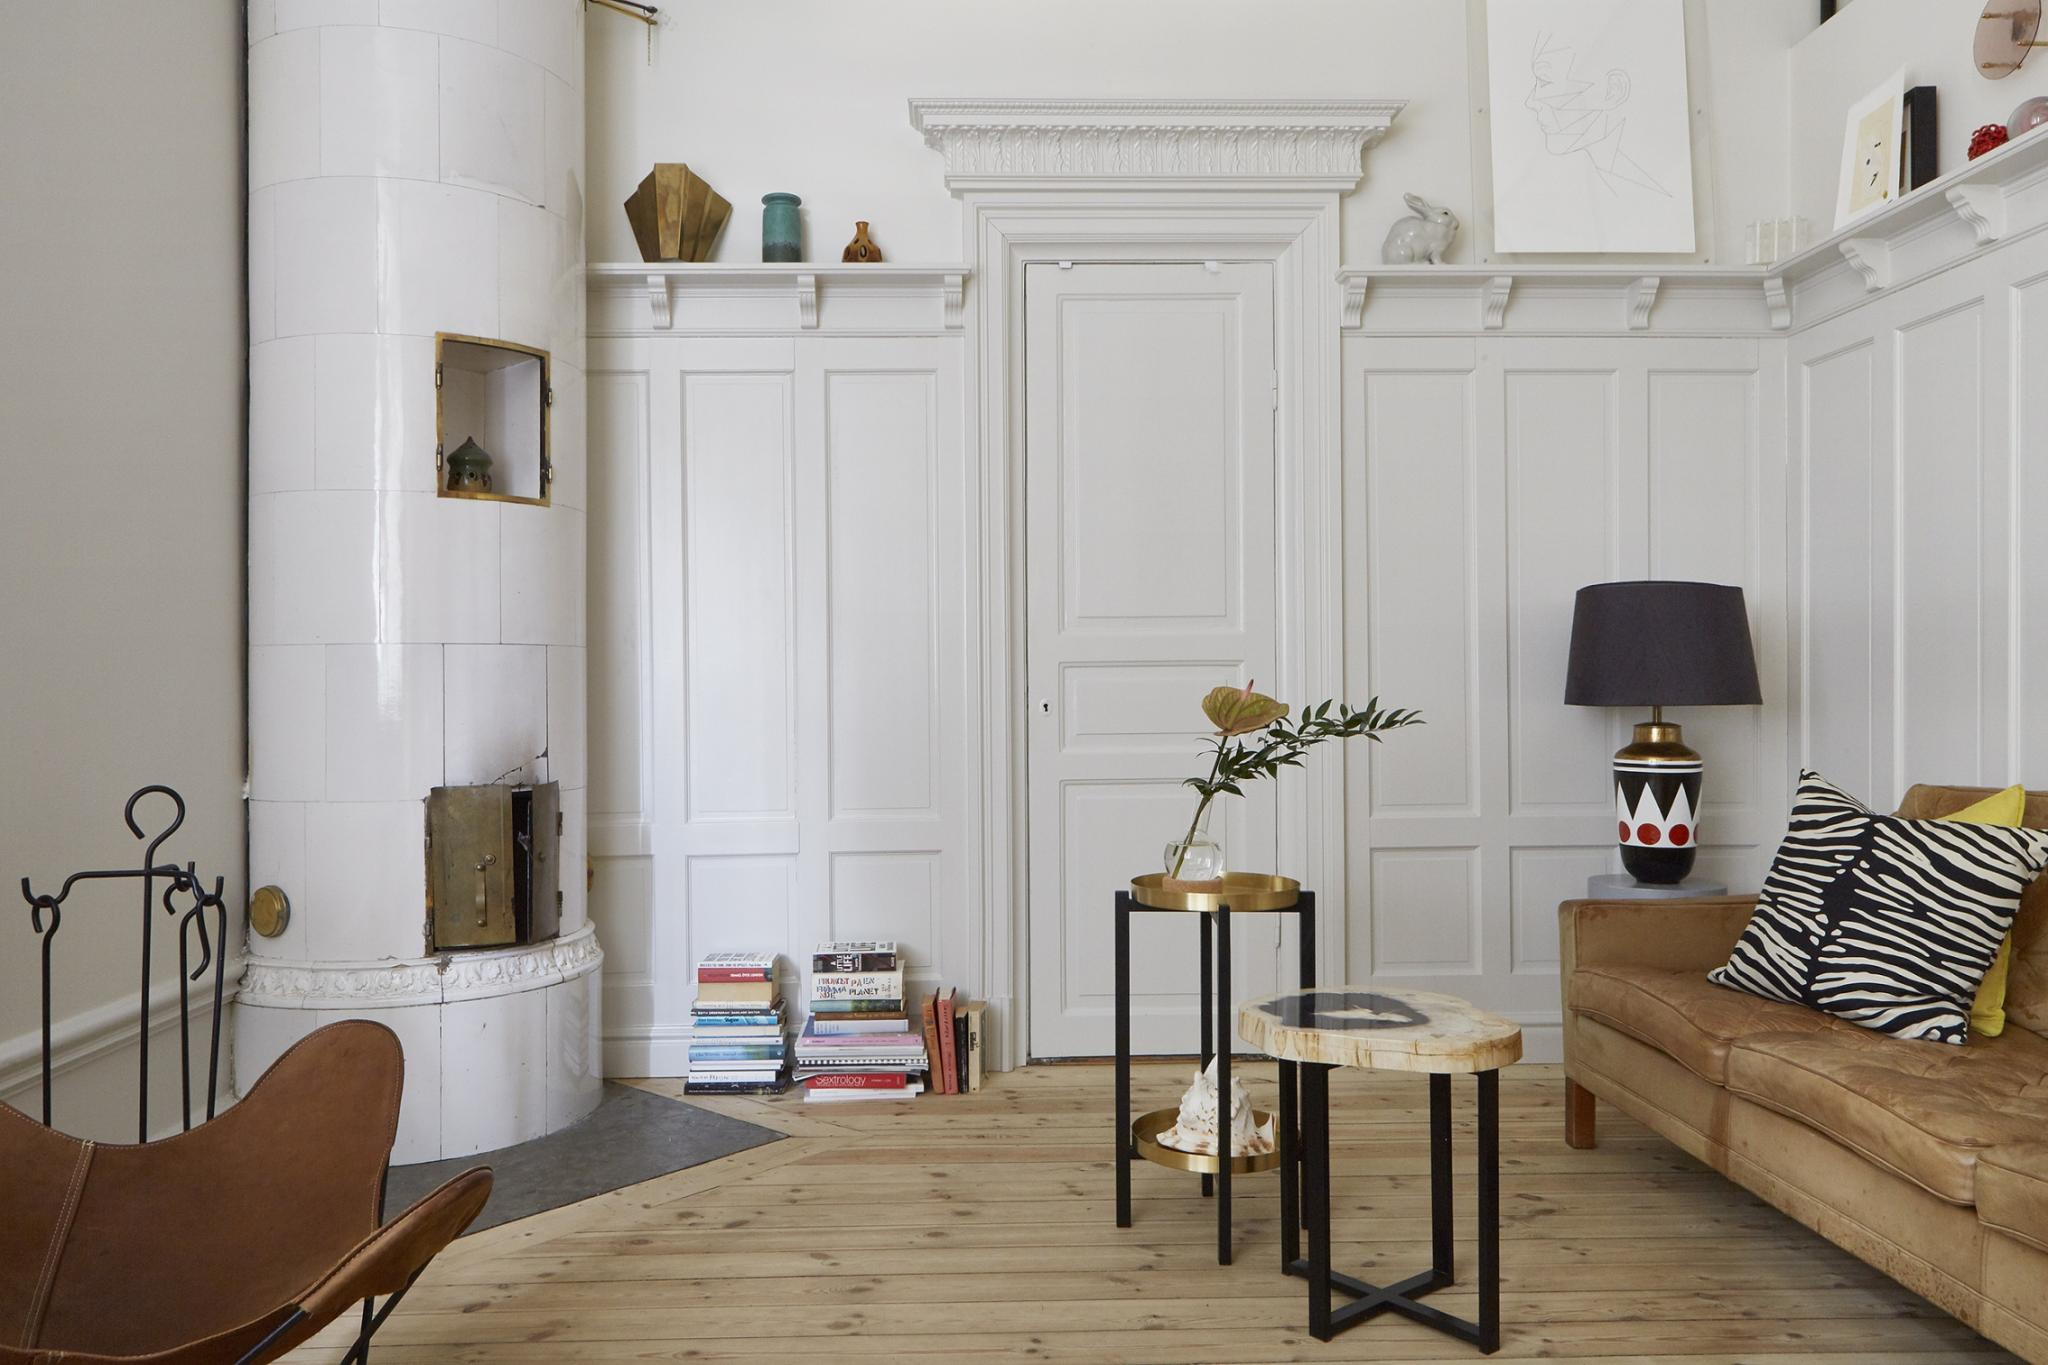 The First Thing You See When Looking At This Quirky Stockholm Apartment Is  The Brass Panelled Kitchen In The Middle Of The Space, Which Is A Real Eye  ...